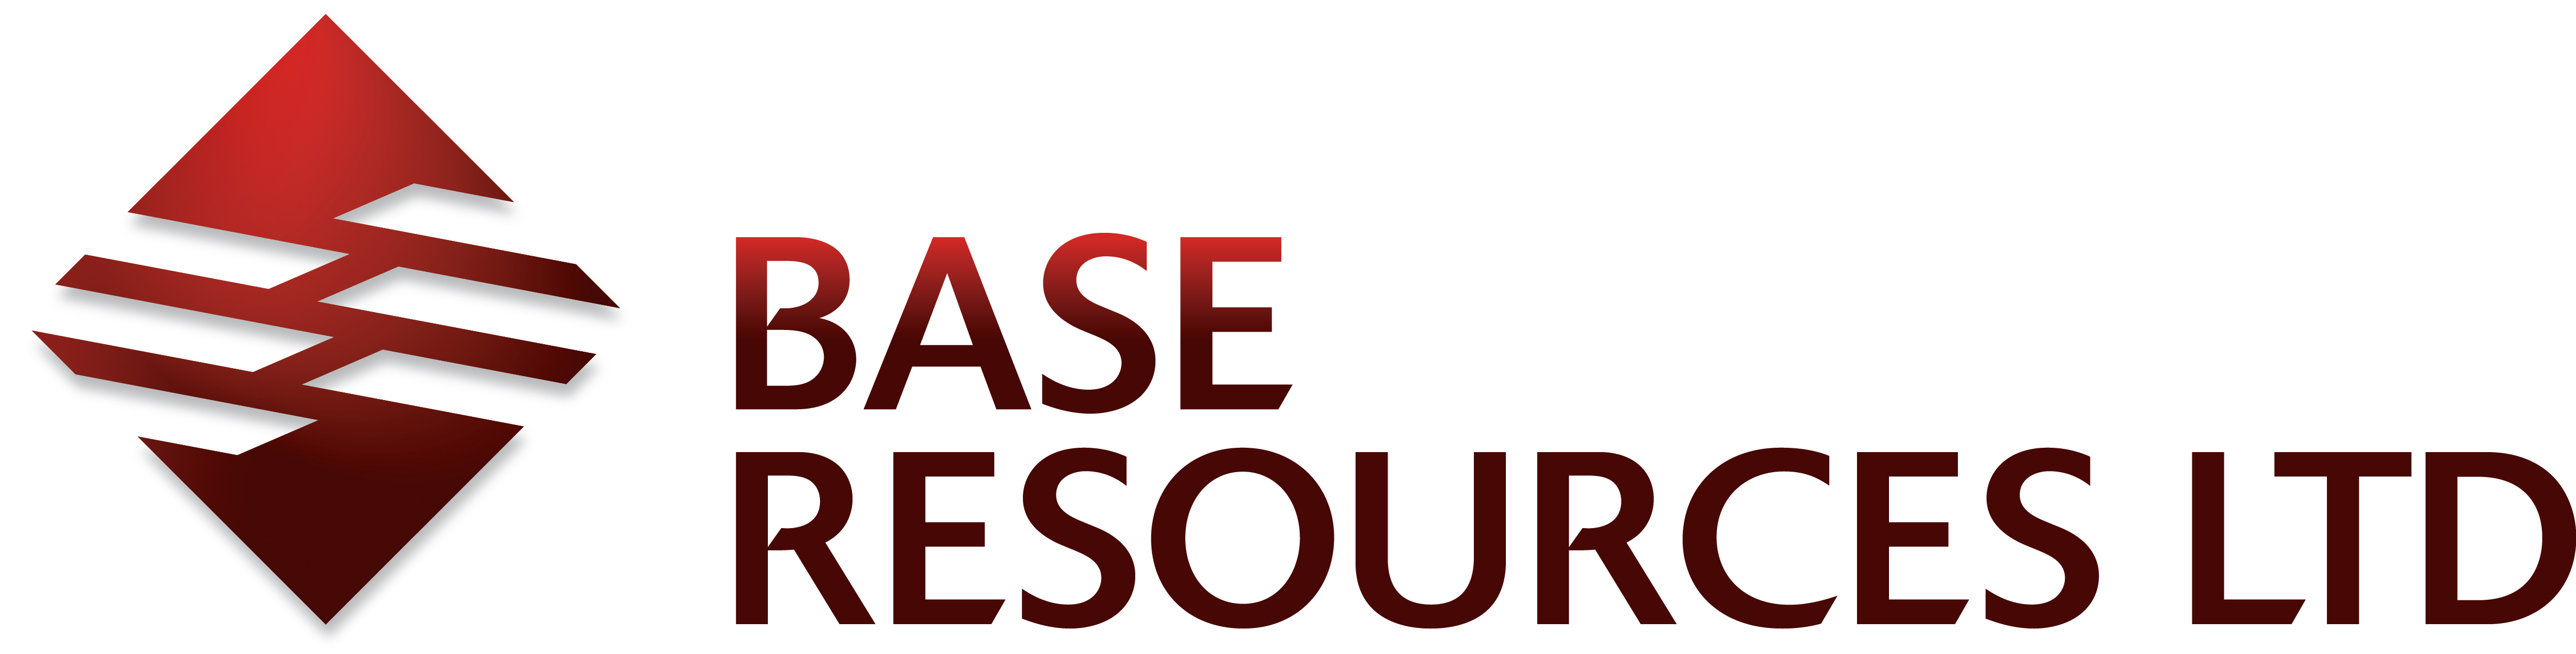 BASE RESOURCES LIMITED Logo